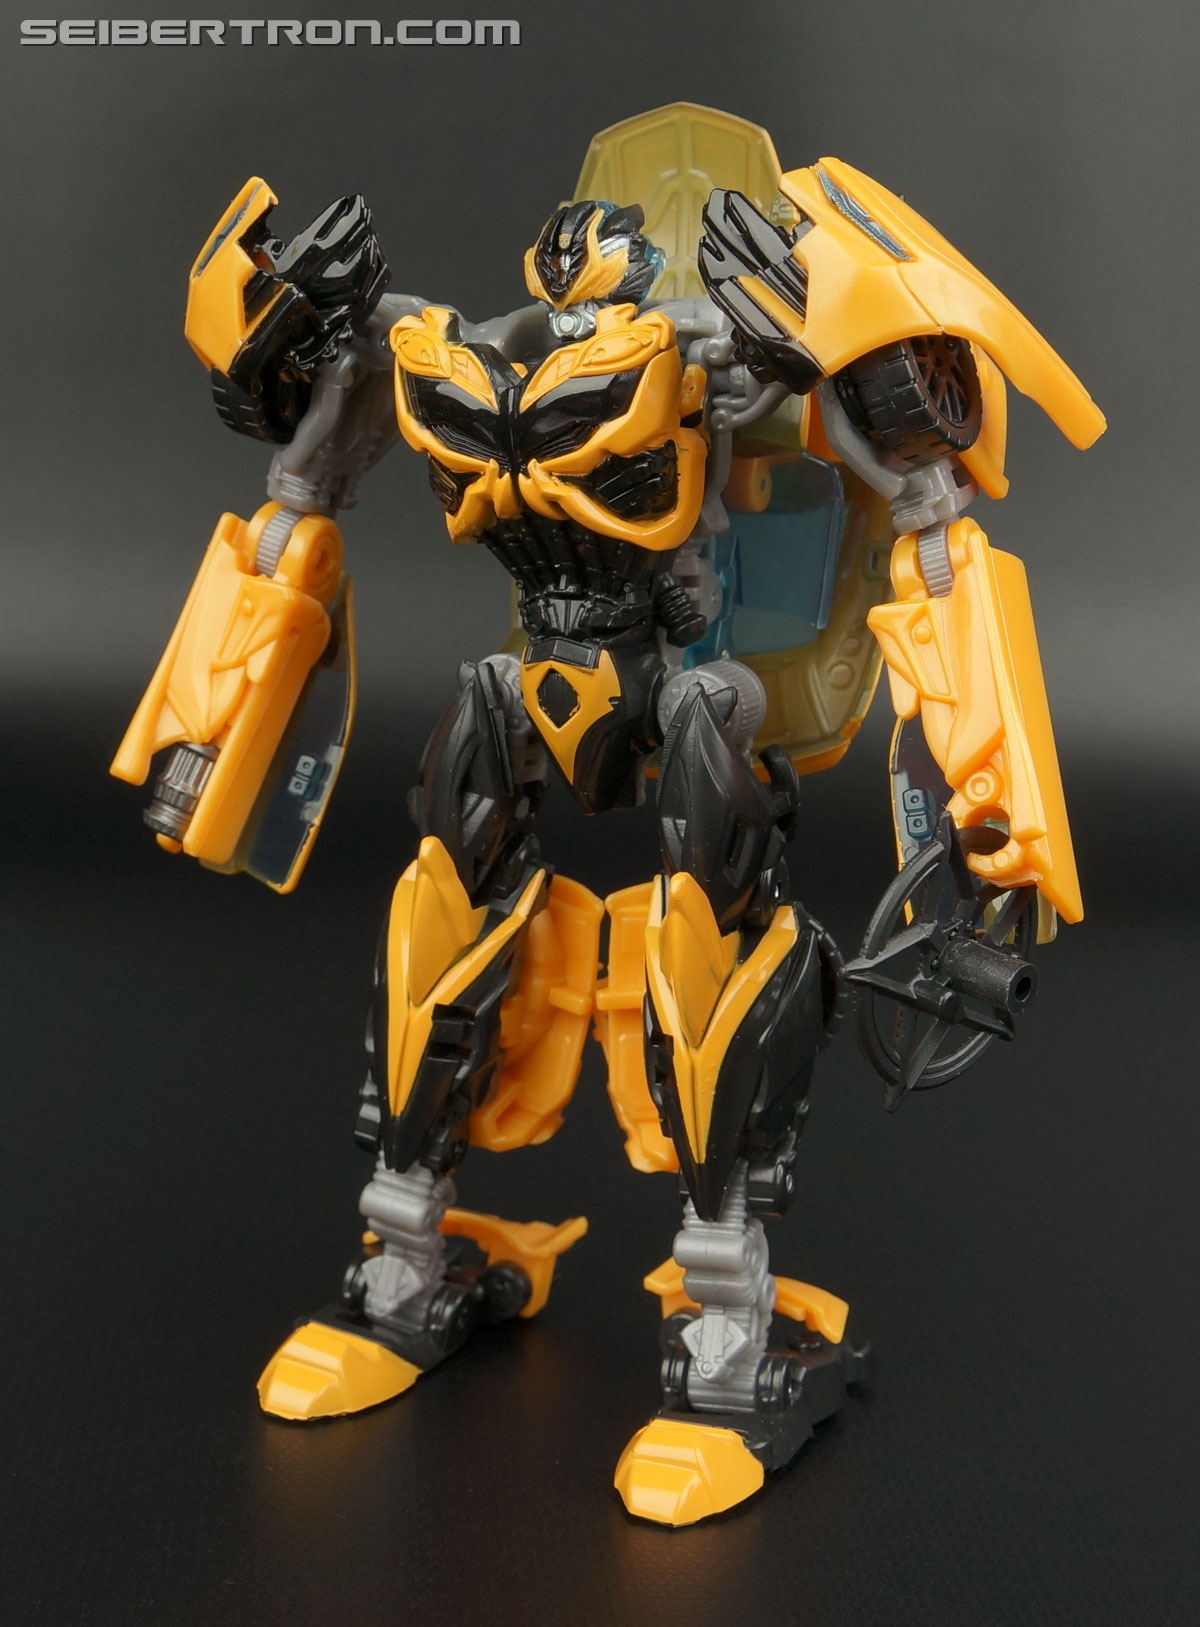 Transformers Age of Extinction: Generations Bumblebee (Image #95 of 190)